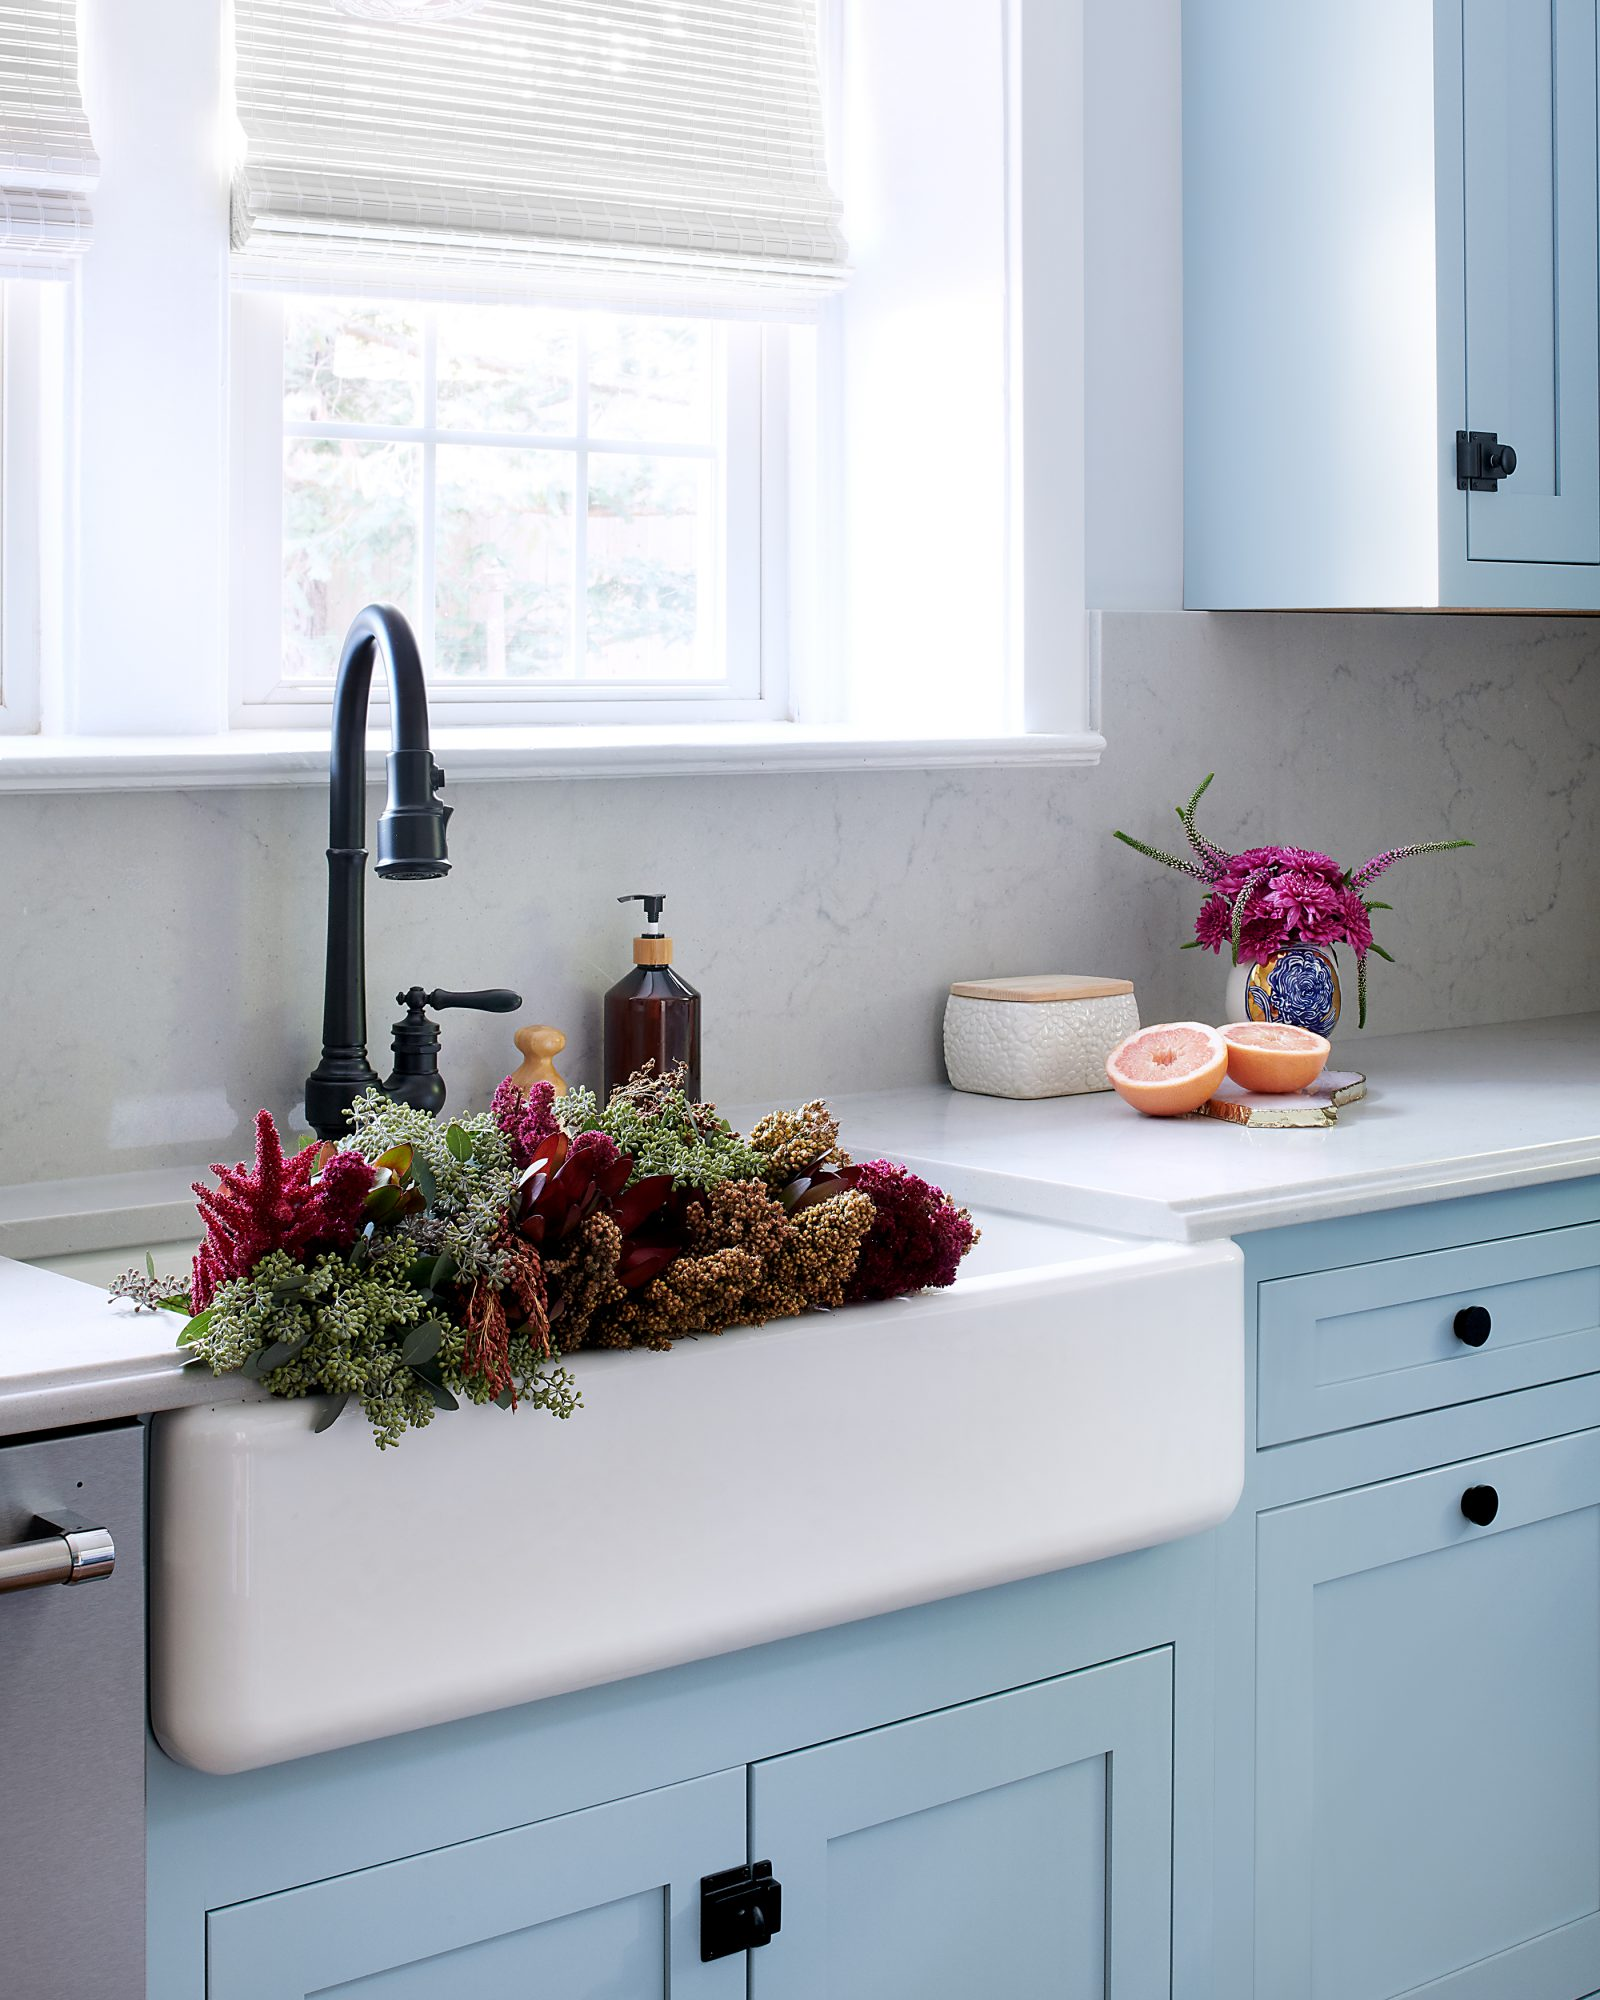 powder blue kitchen with view of sink details